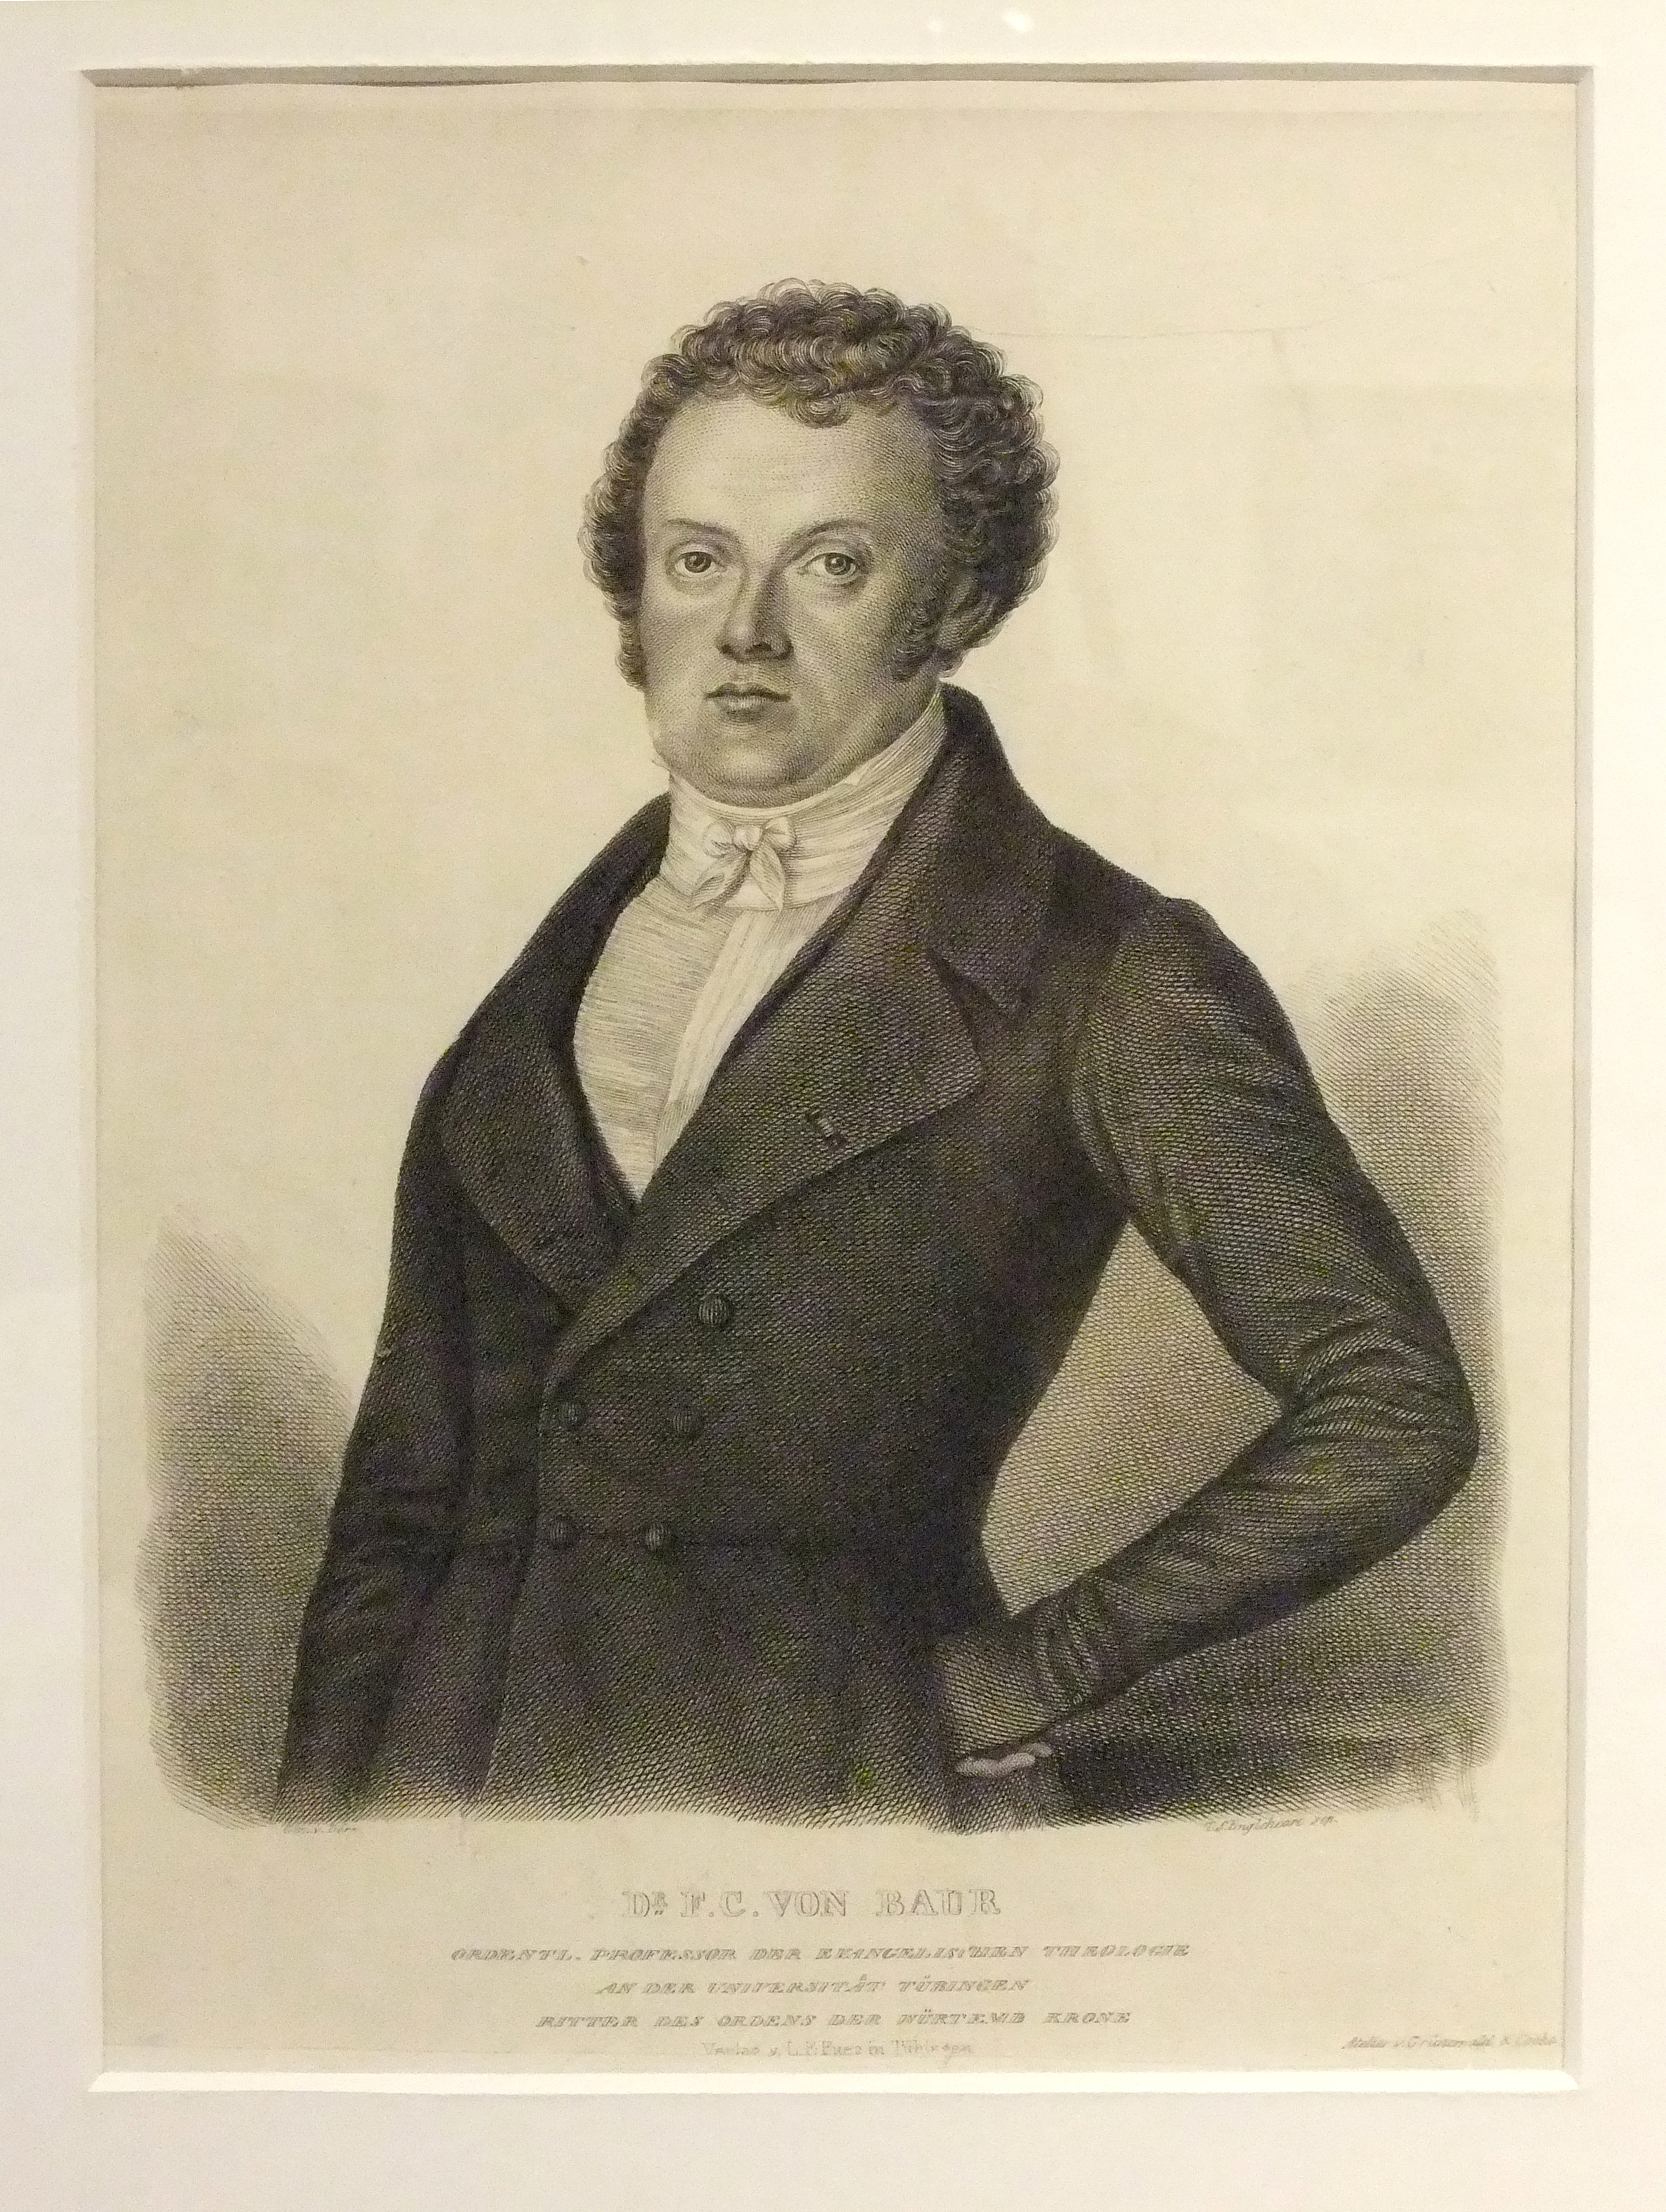 ''Dr. F. C. von Baur''<br />(Steel engraving by Christoph Friedrich Dörr, 1830s)